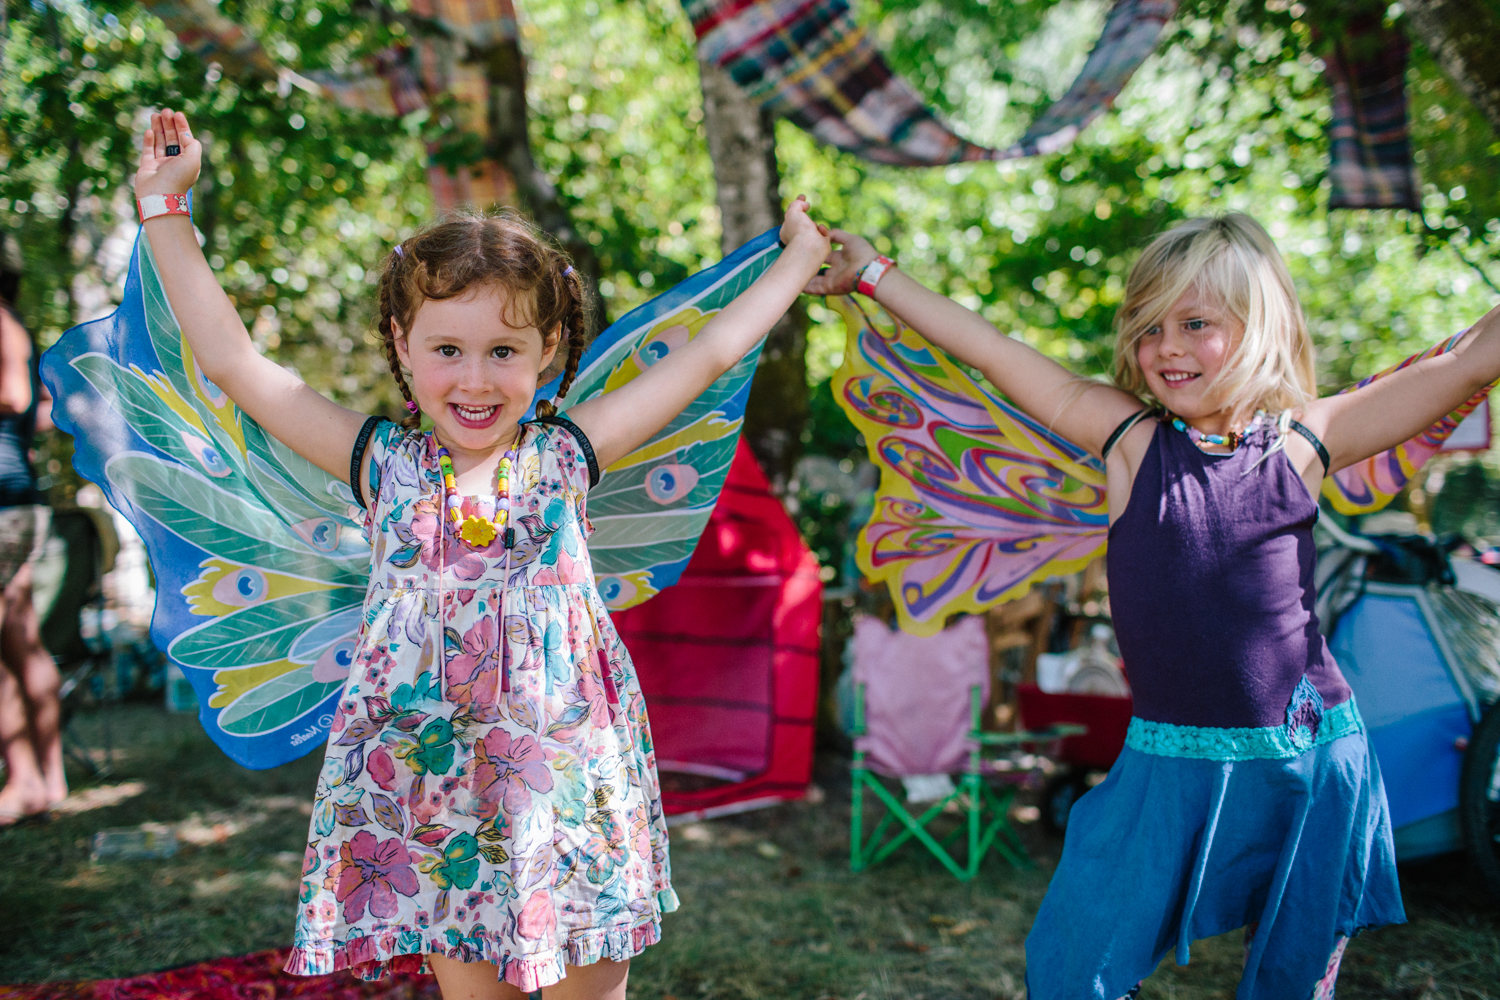 nevada city natural light event childrens party photographer